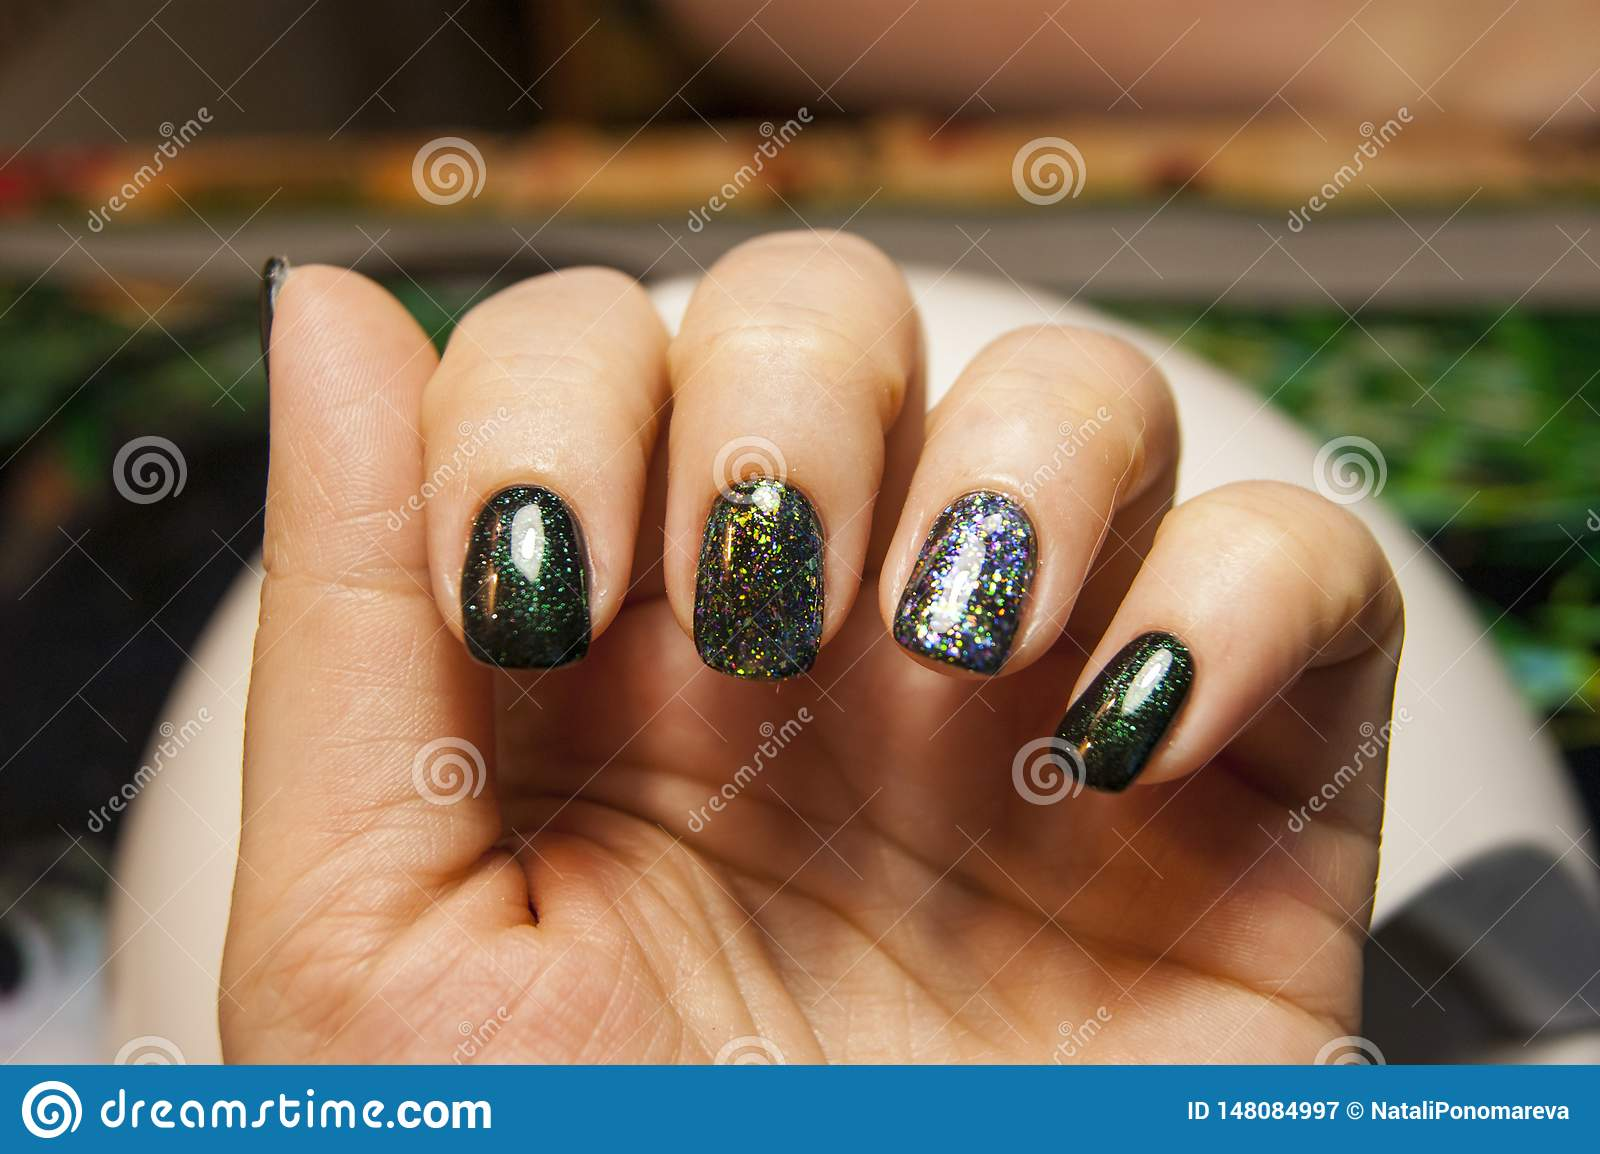 Beautiful green manicure, nail polish on nails of different shades of green, with a slight sheen and large shimmer